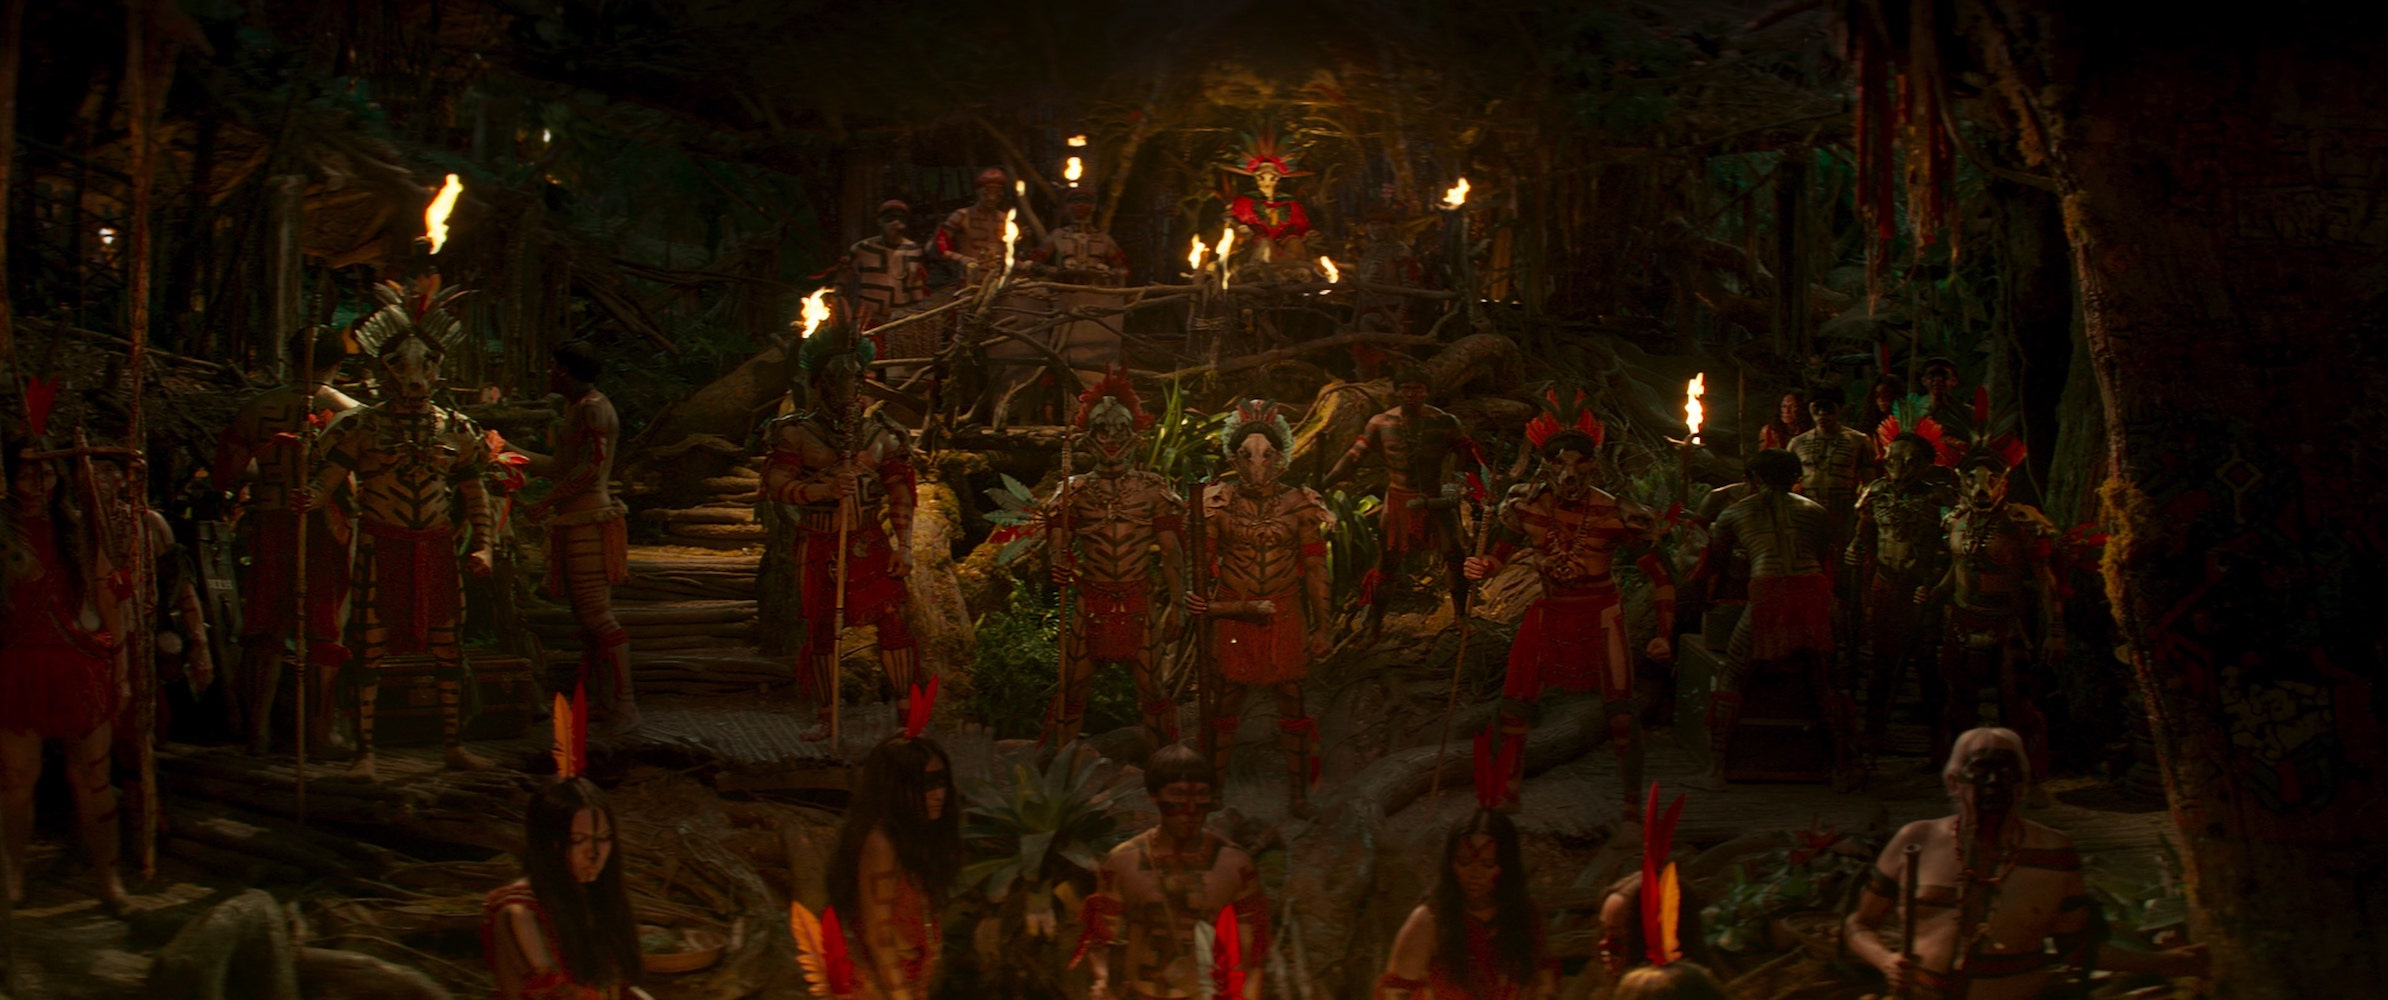 Scene from Disney's Jungle Cruise. Photo Courtesy of Disney. 2021 Disney Enterprises, Inc. All Rights Reserved.